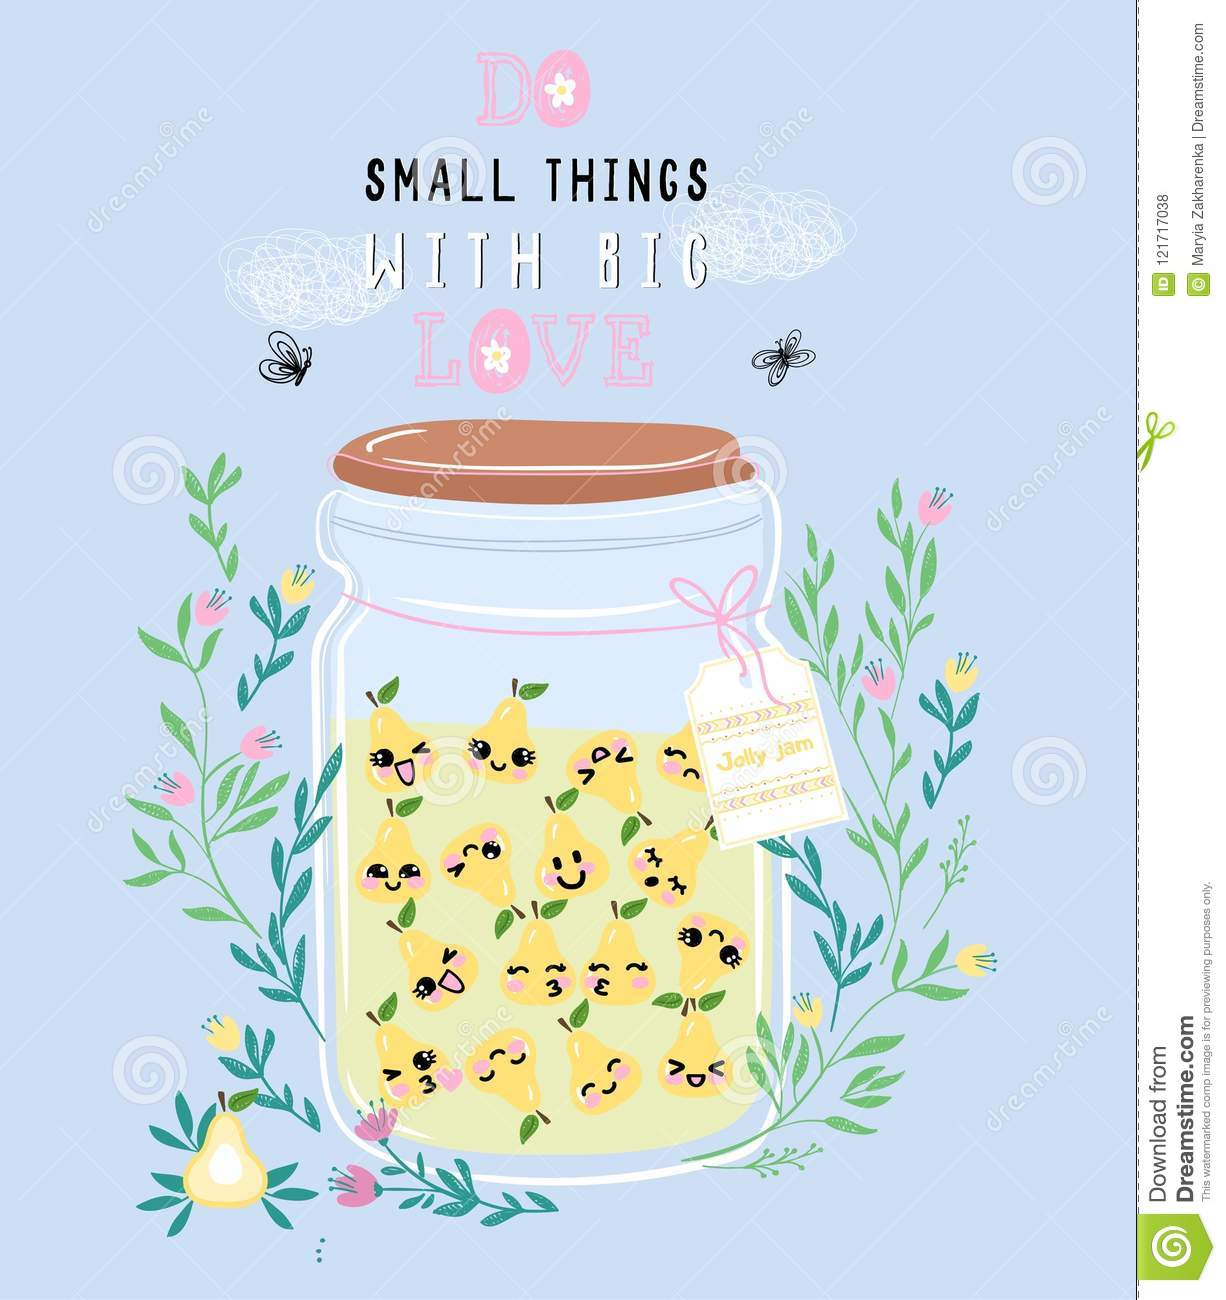 Image of: Draw Vector Illustration Of Jar Of Pear Jam With Cute Kawaii Berries Drawn With Tablet In Anime Style Vector Illustration Of Jar Of Pear Jam With Cute Kawaii Berries